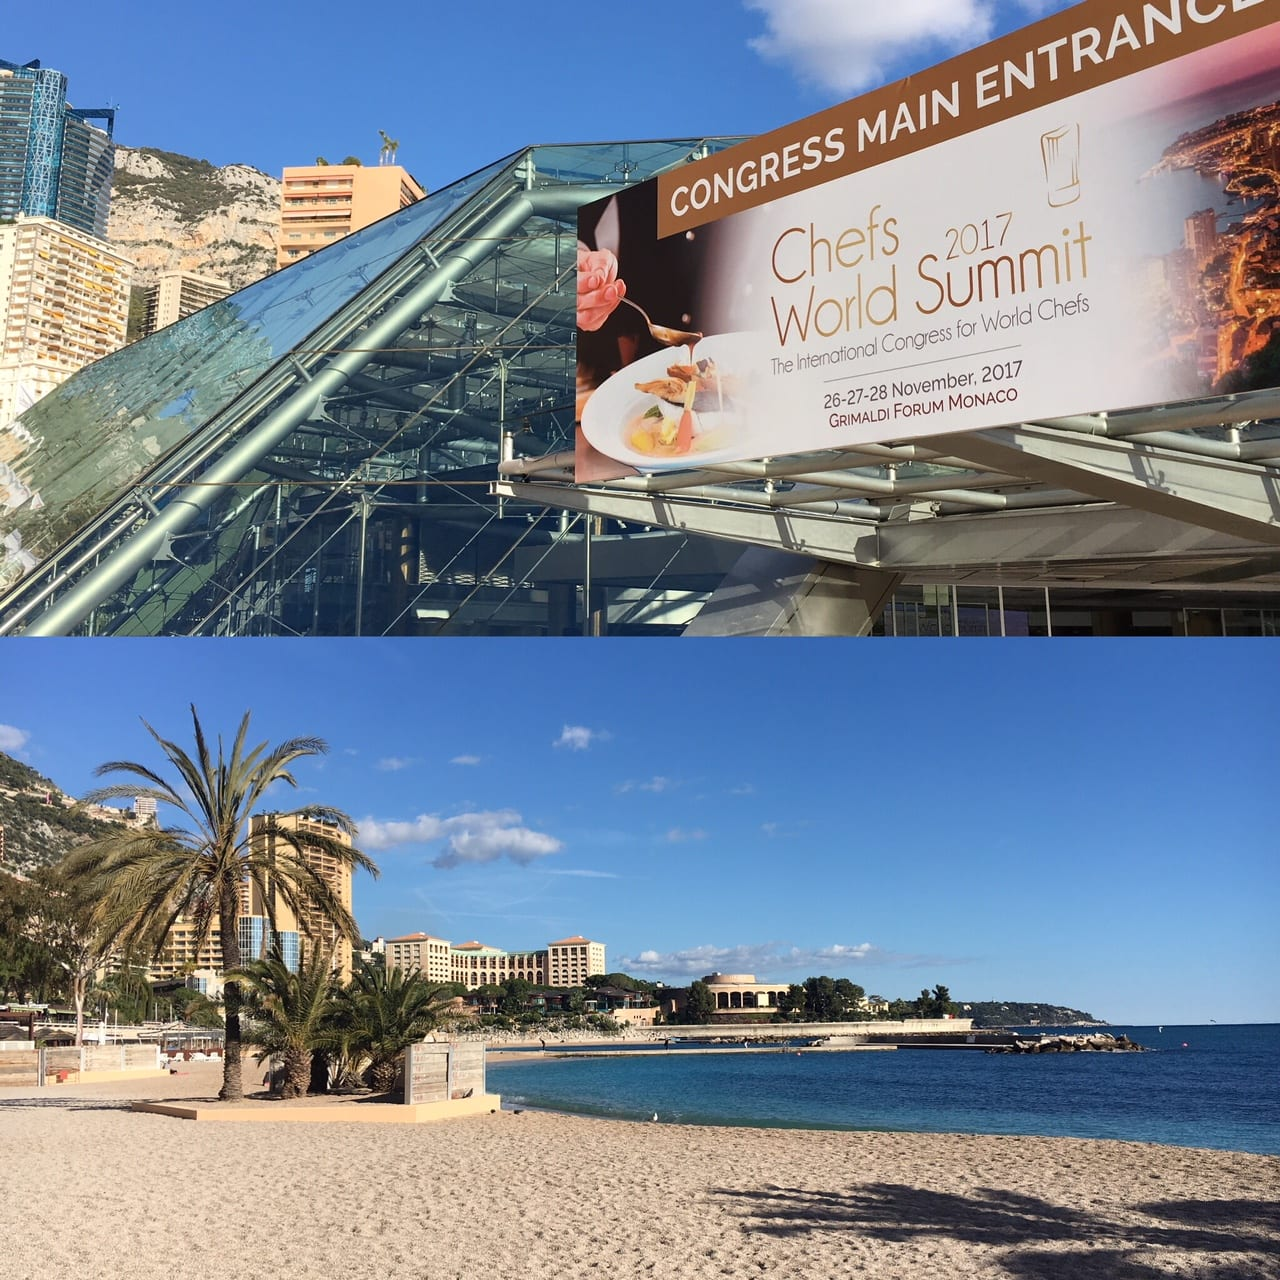 54E8C90A E5FB 4E17 9BDD 19C467B55BE7 Rochini meets Chefs World Summit 2017 in Monaco